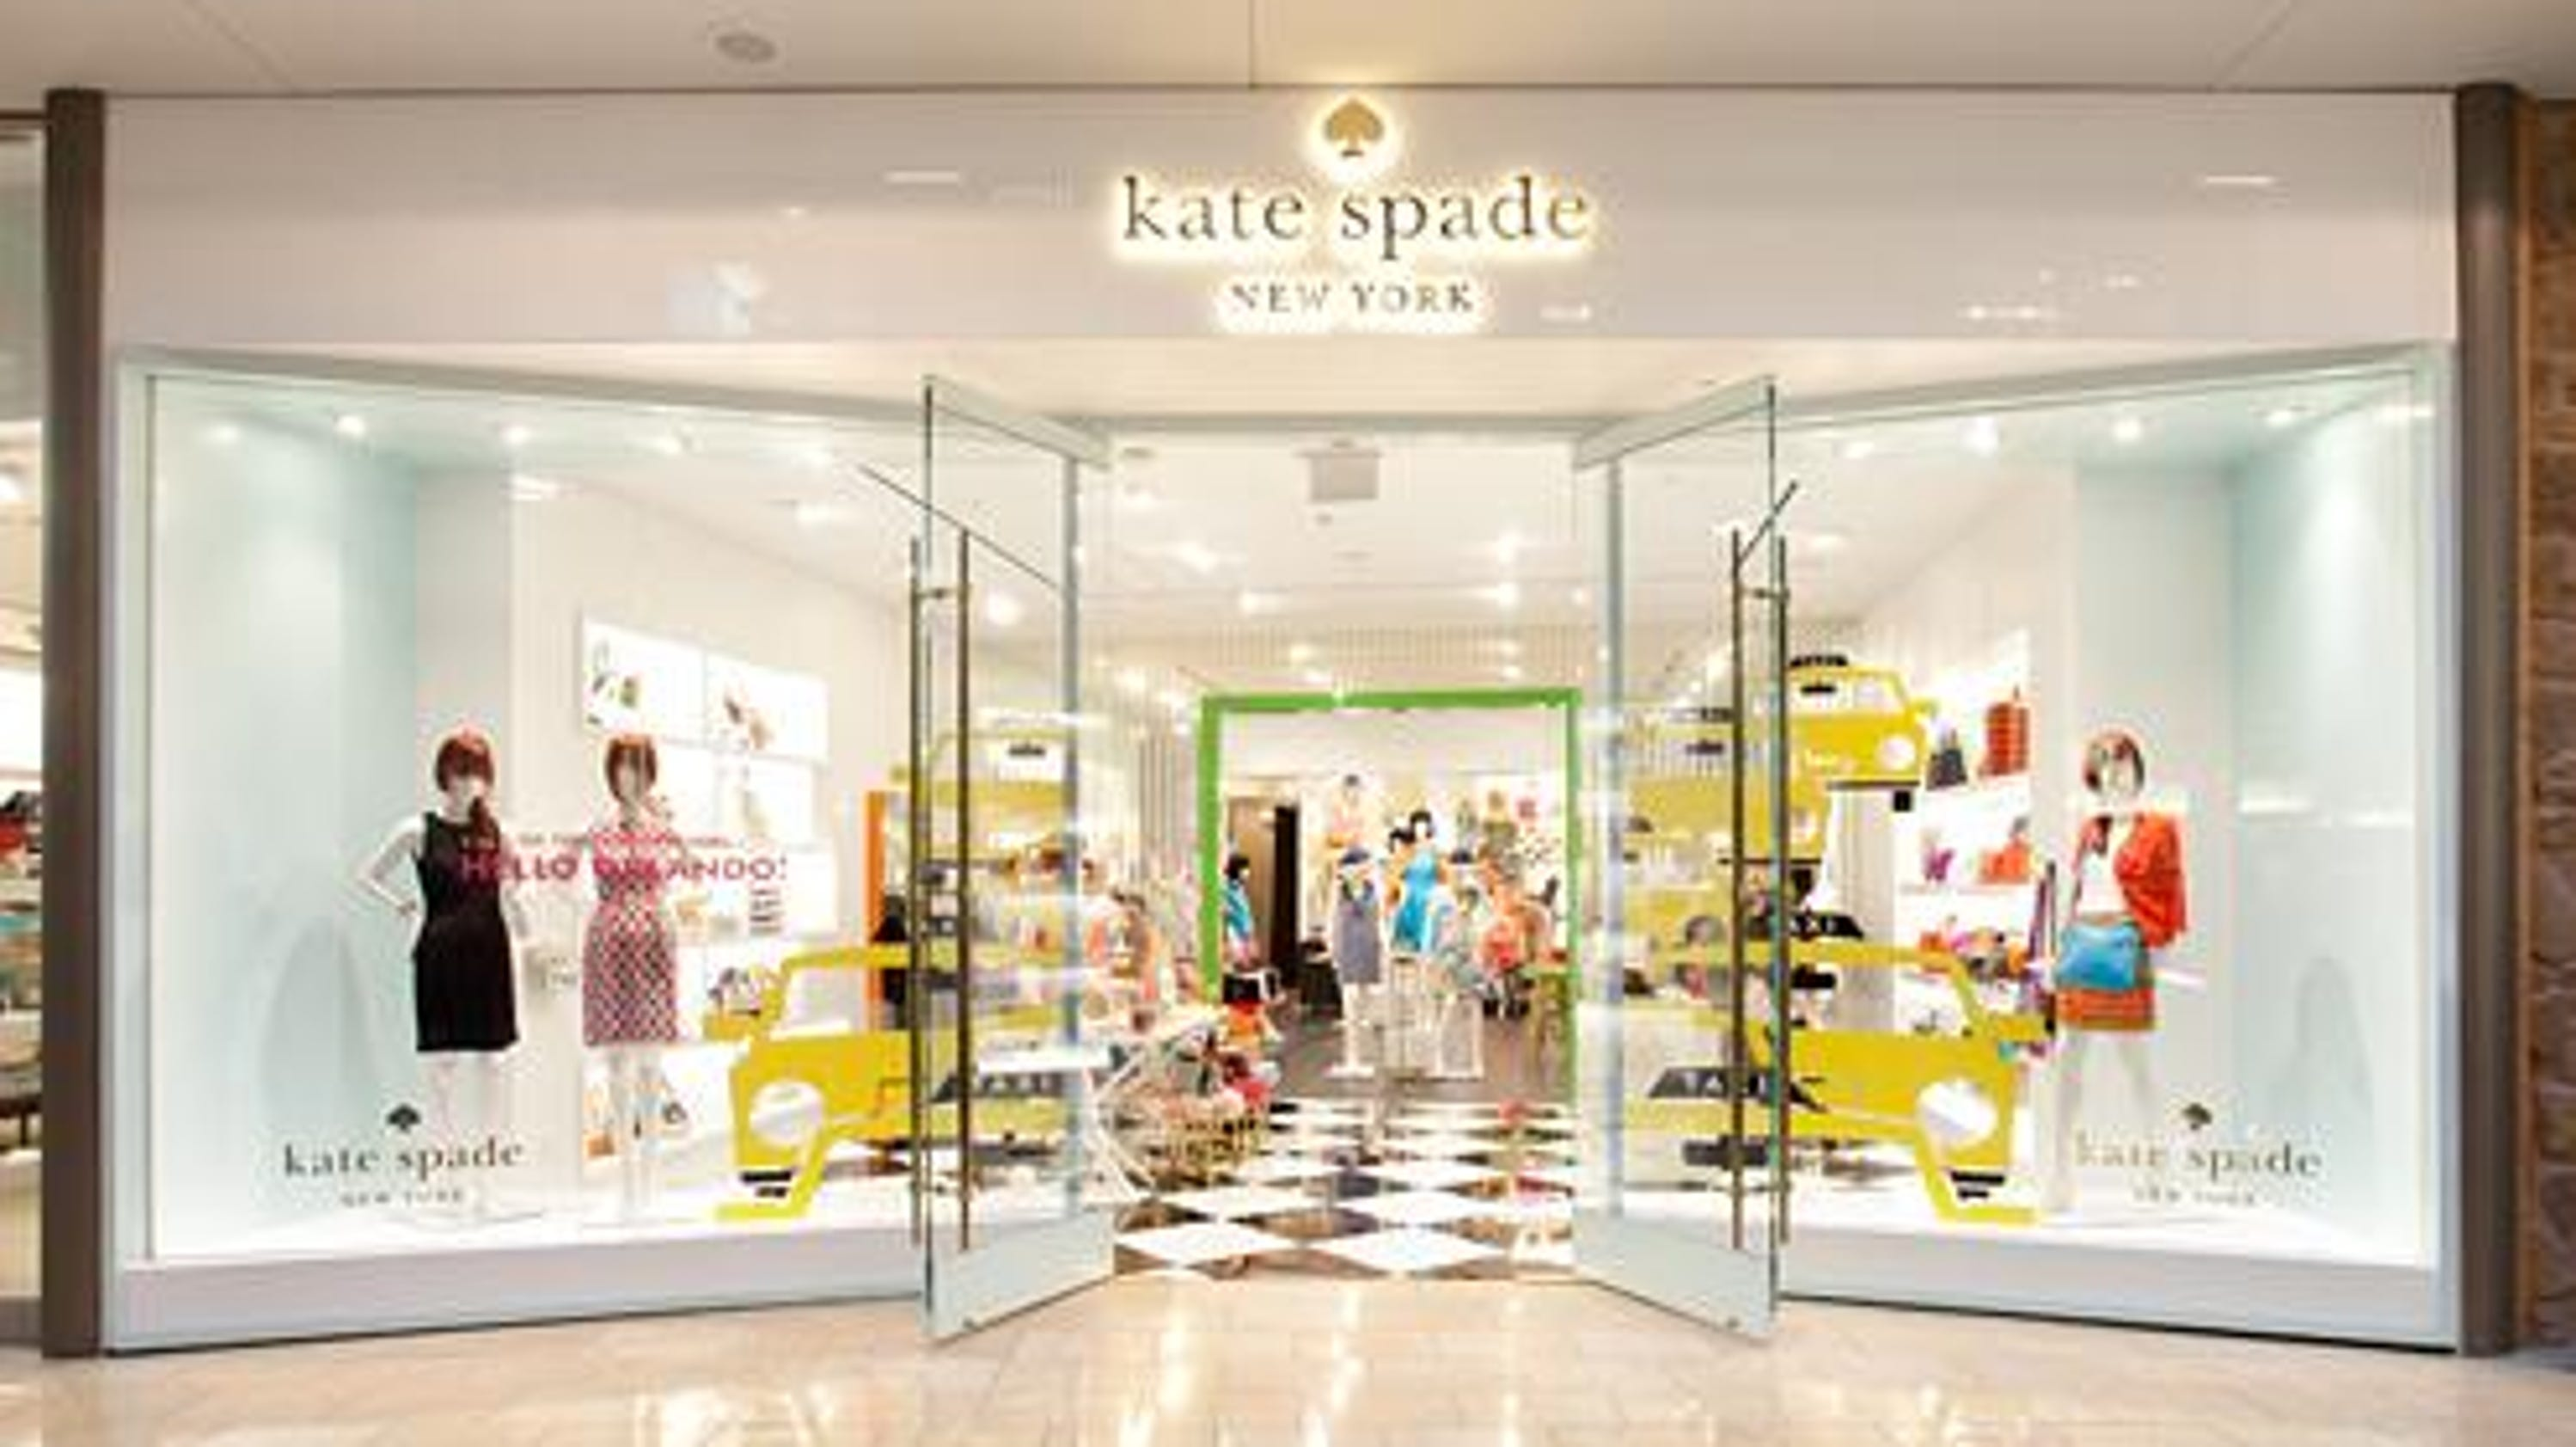 Kate Spade outlet store eyed for Opry Mills